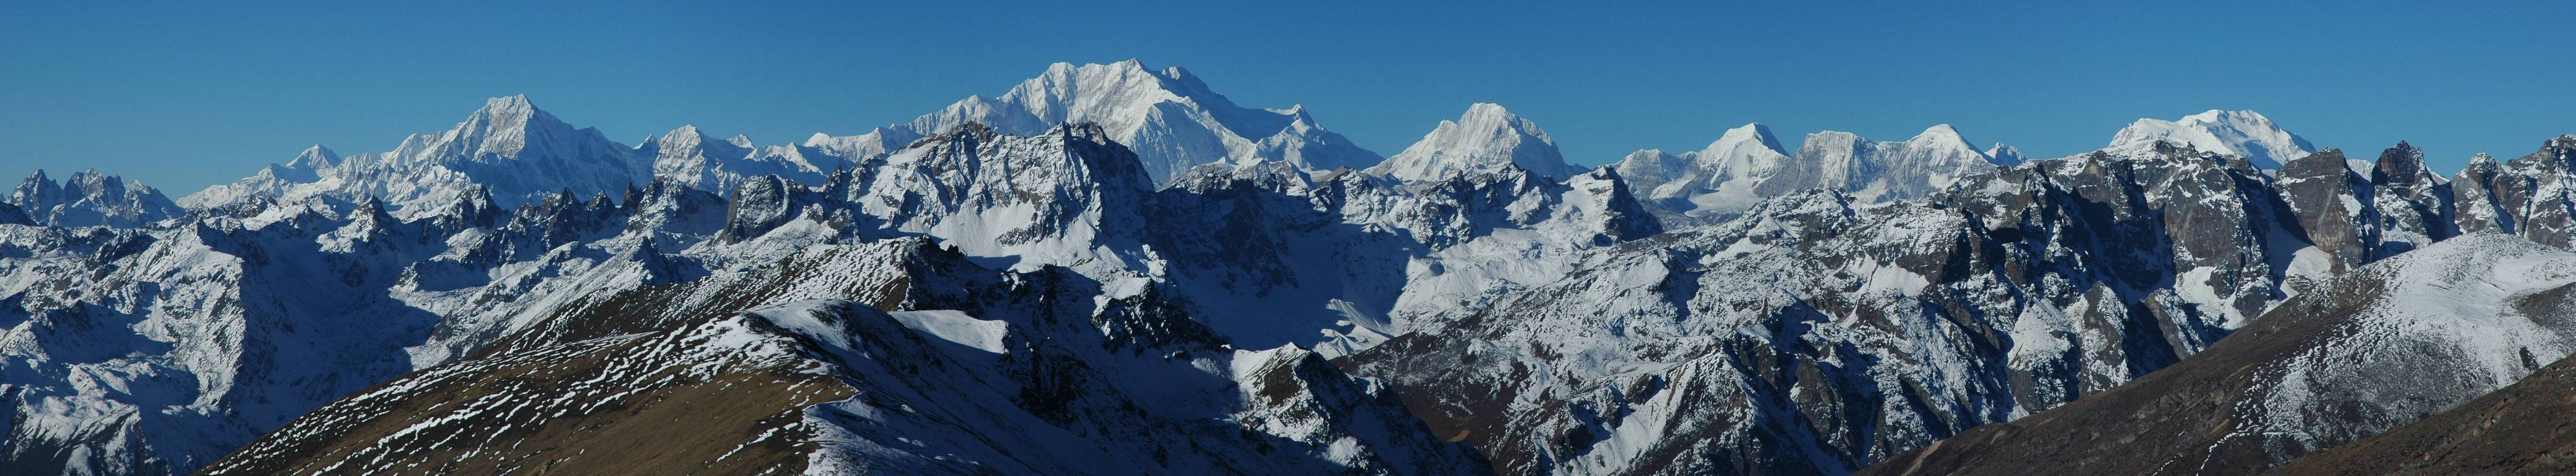 http://upload.wikimedia.org/wikipedia/commons/c/c0/Panorama_Kangchenjunga_range_from_Sikkim.jpg